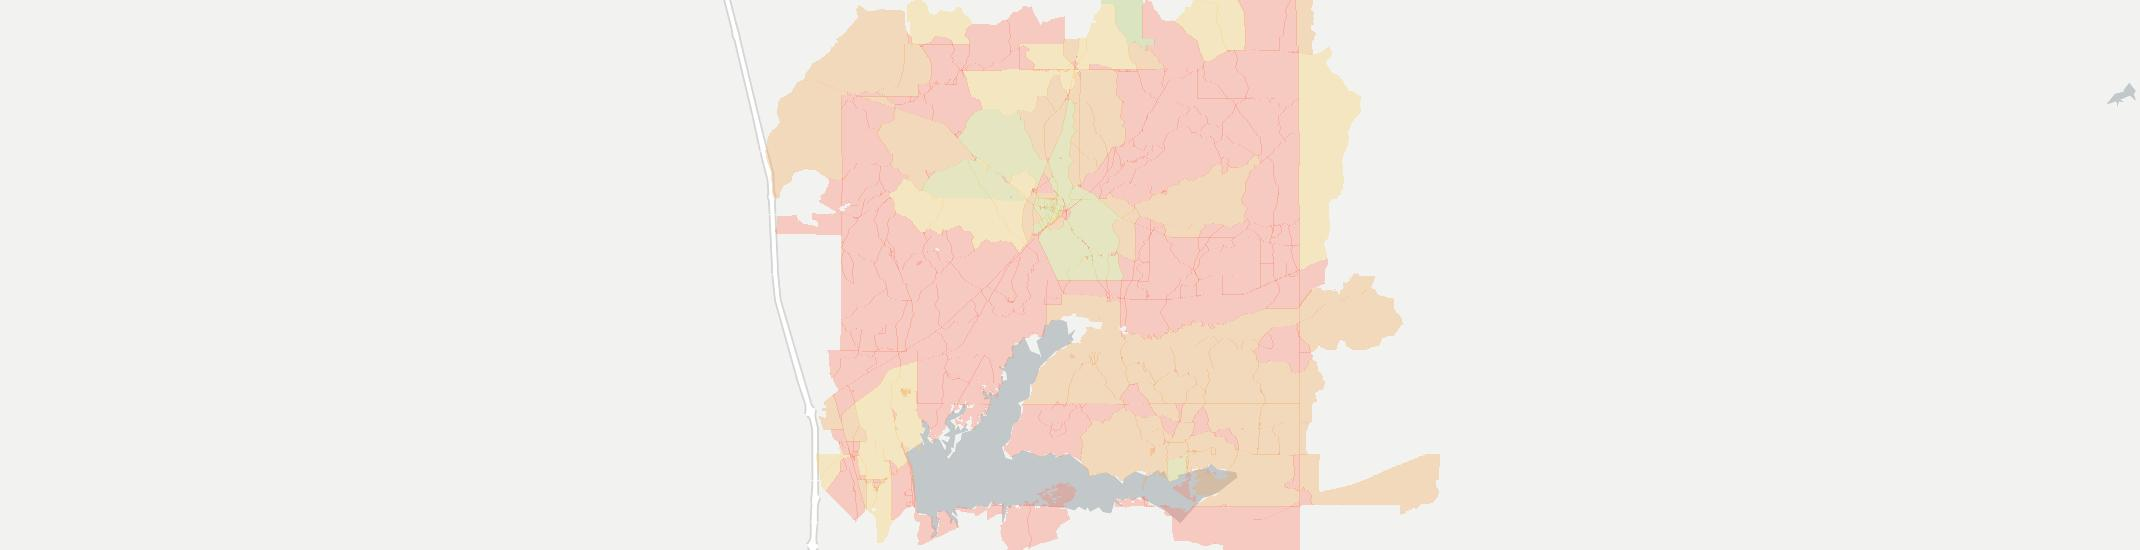 Coffeeville Internet Competition Map. Click for interactive map.